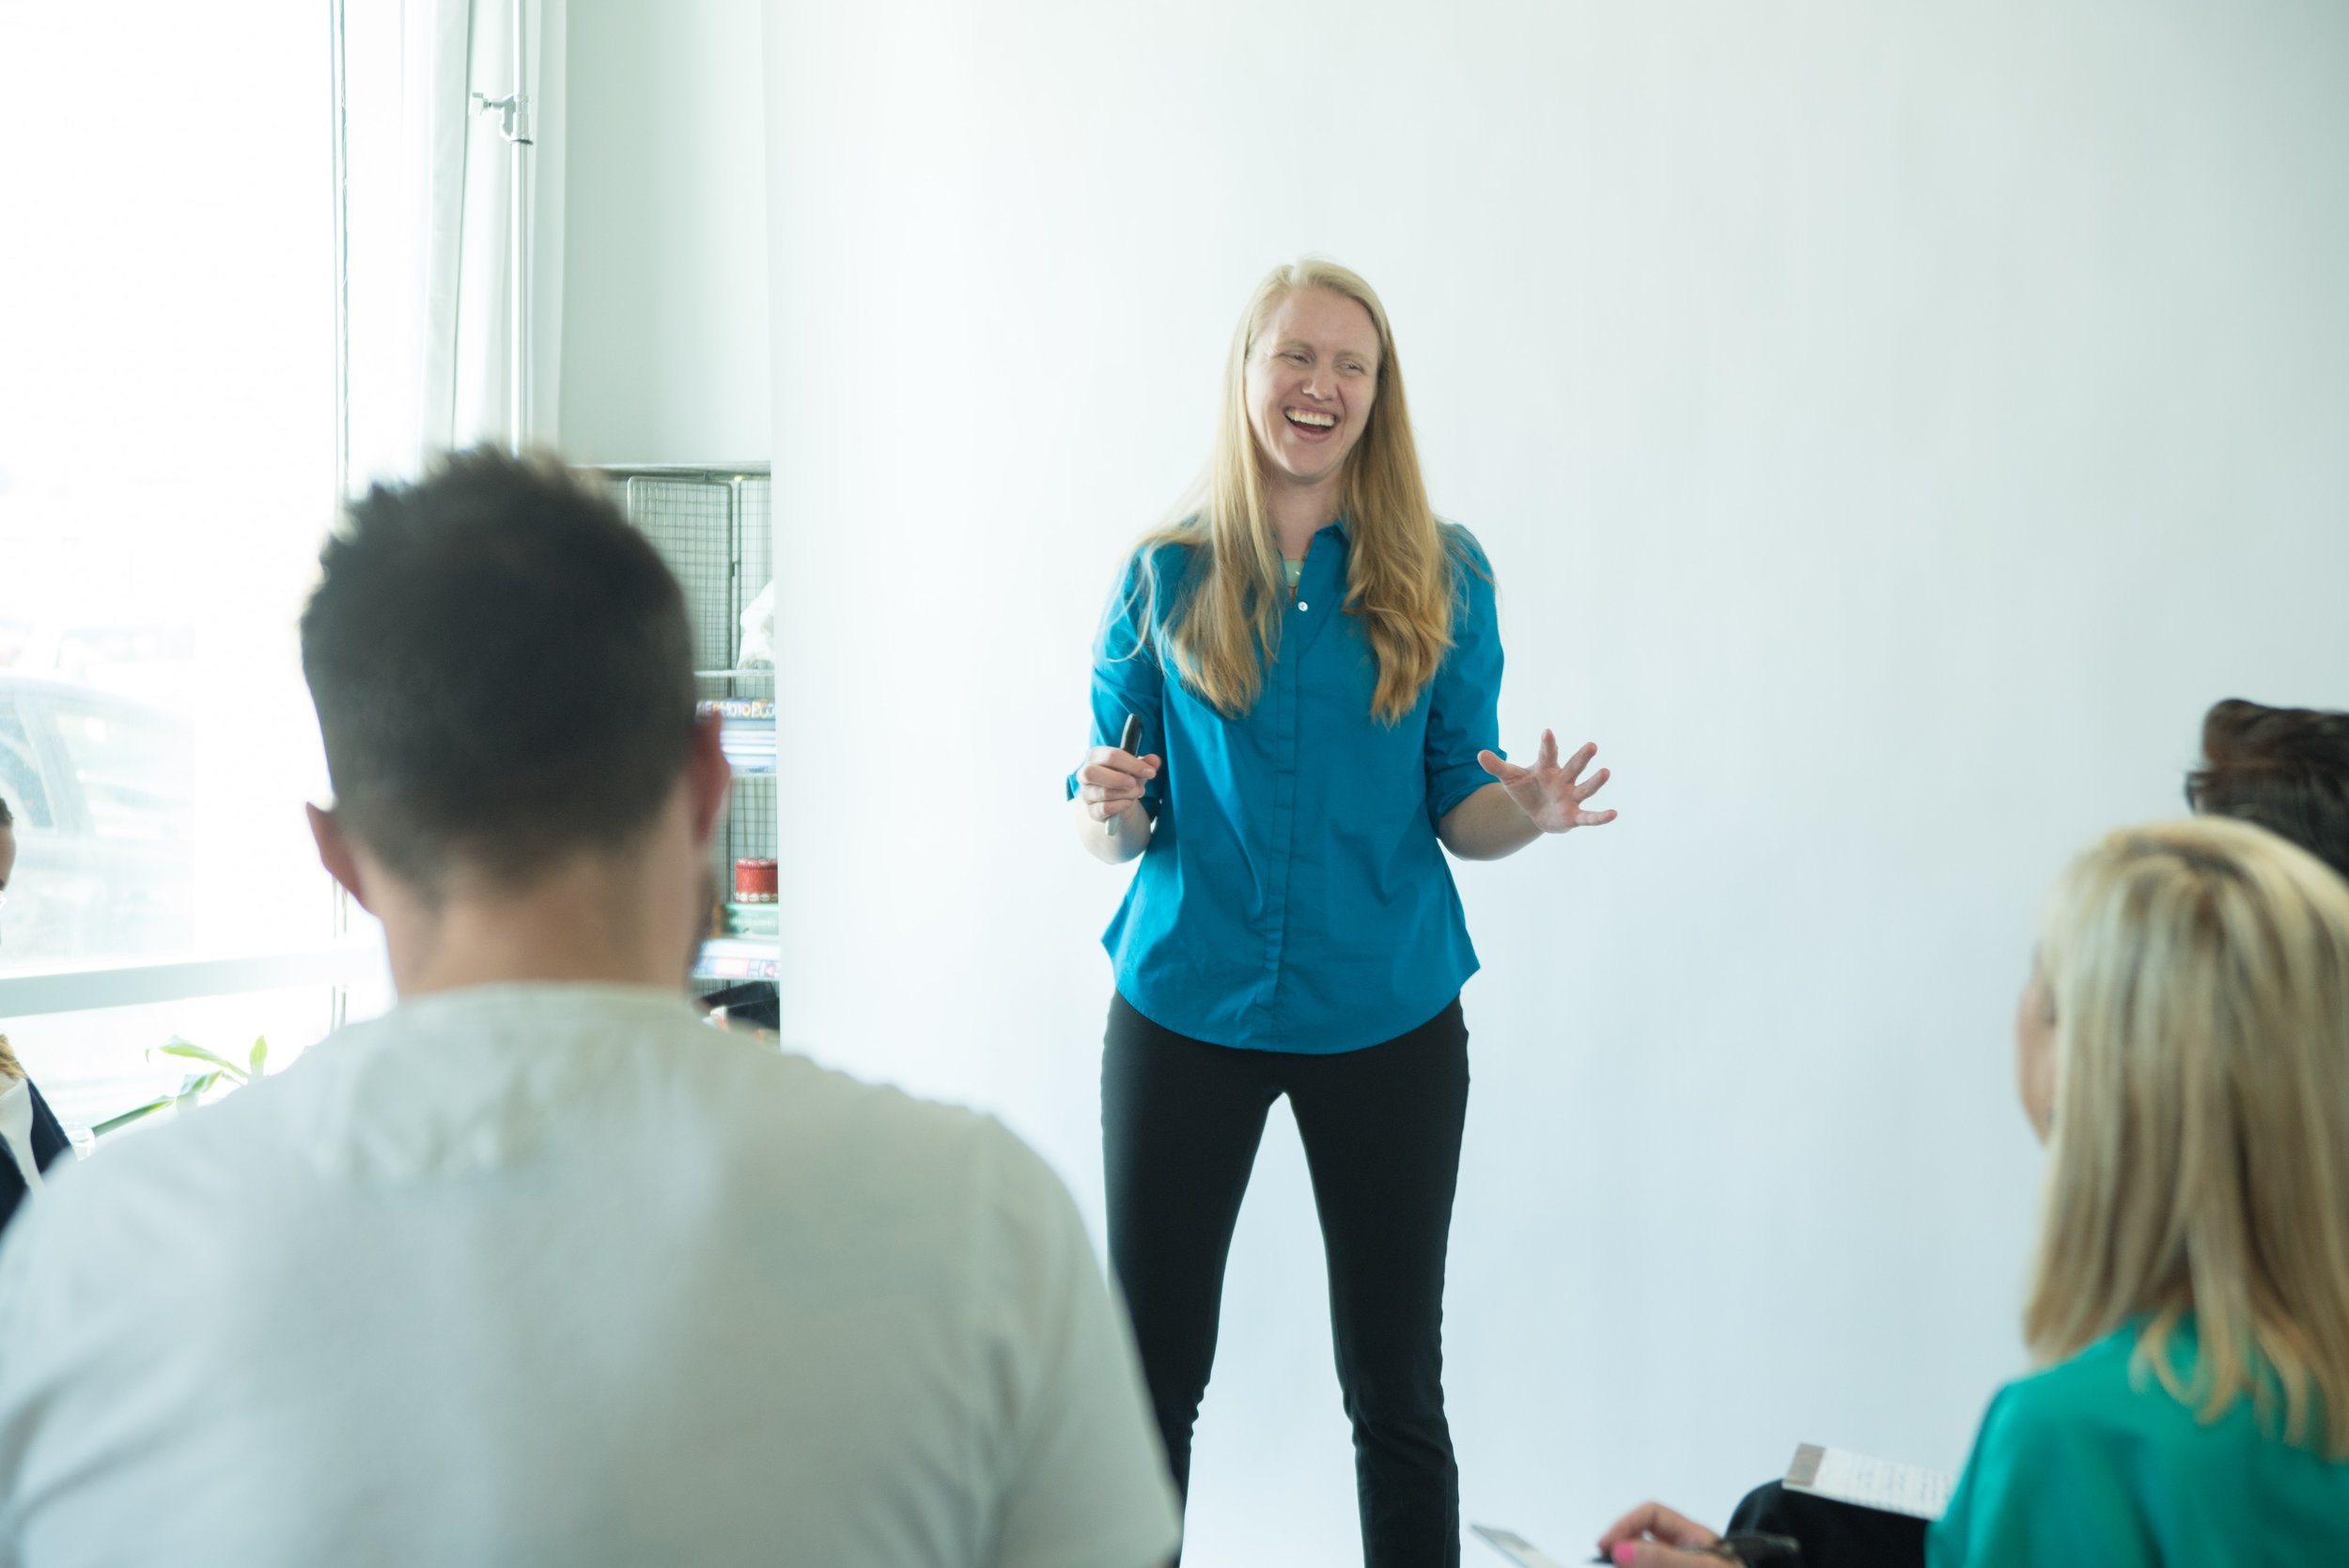 Executive Presentation Coach Jennifer Hennings helps professionals manage their public speaking nerves so they can lead and motivate more effectively.